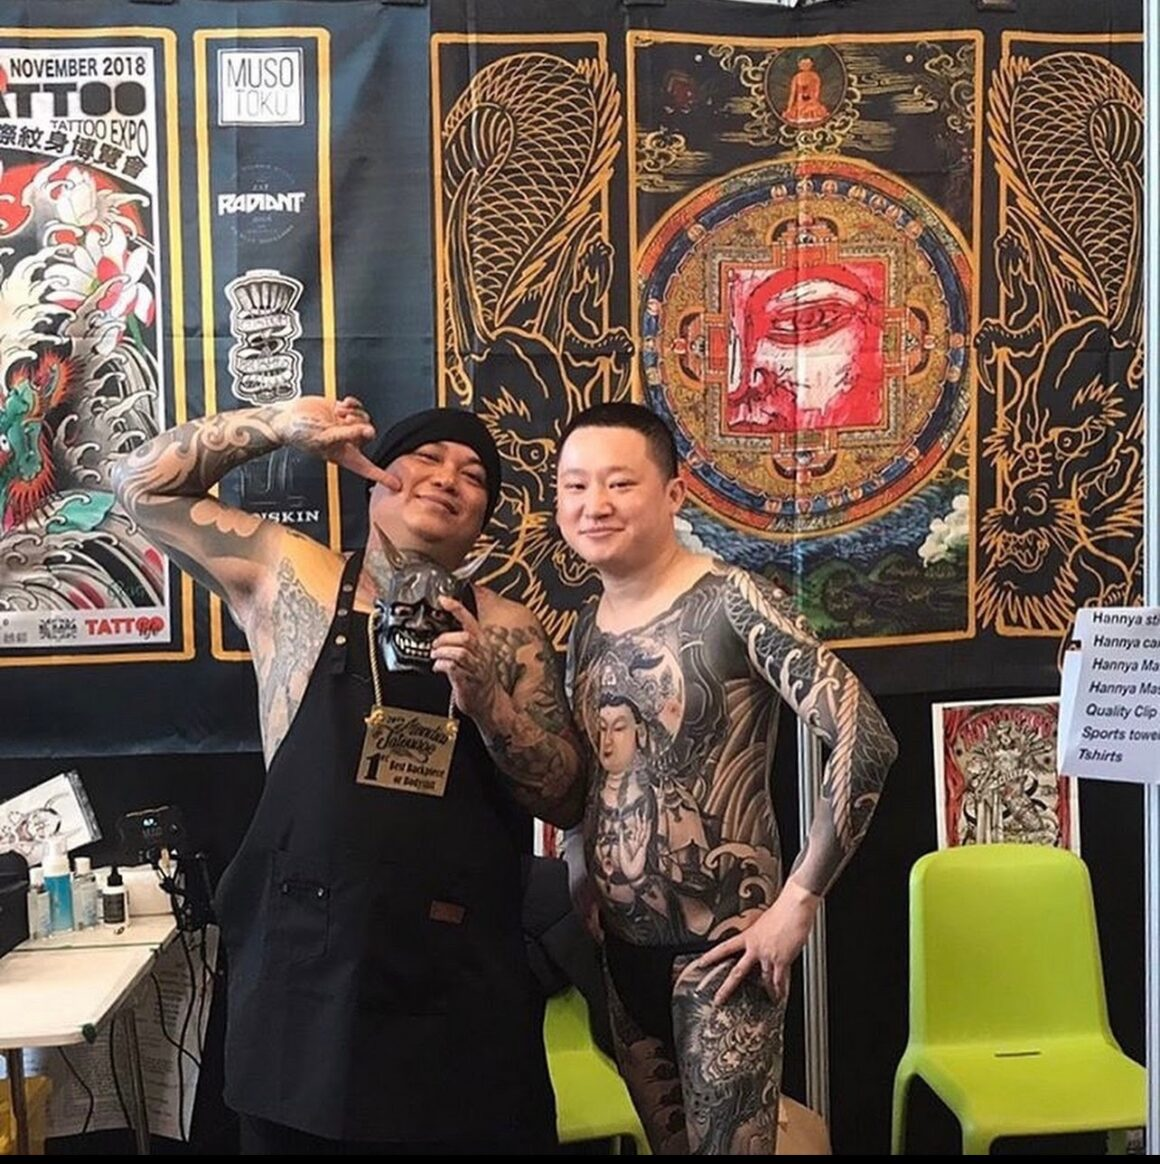 Orient Ching in 2018 at the Mondial du Tatouage, Best Backpiece 1st place